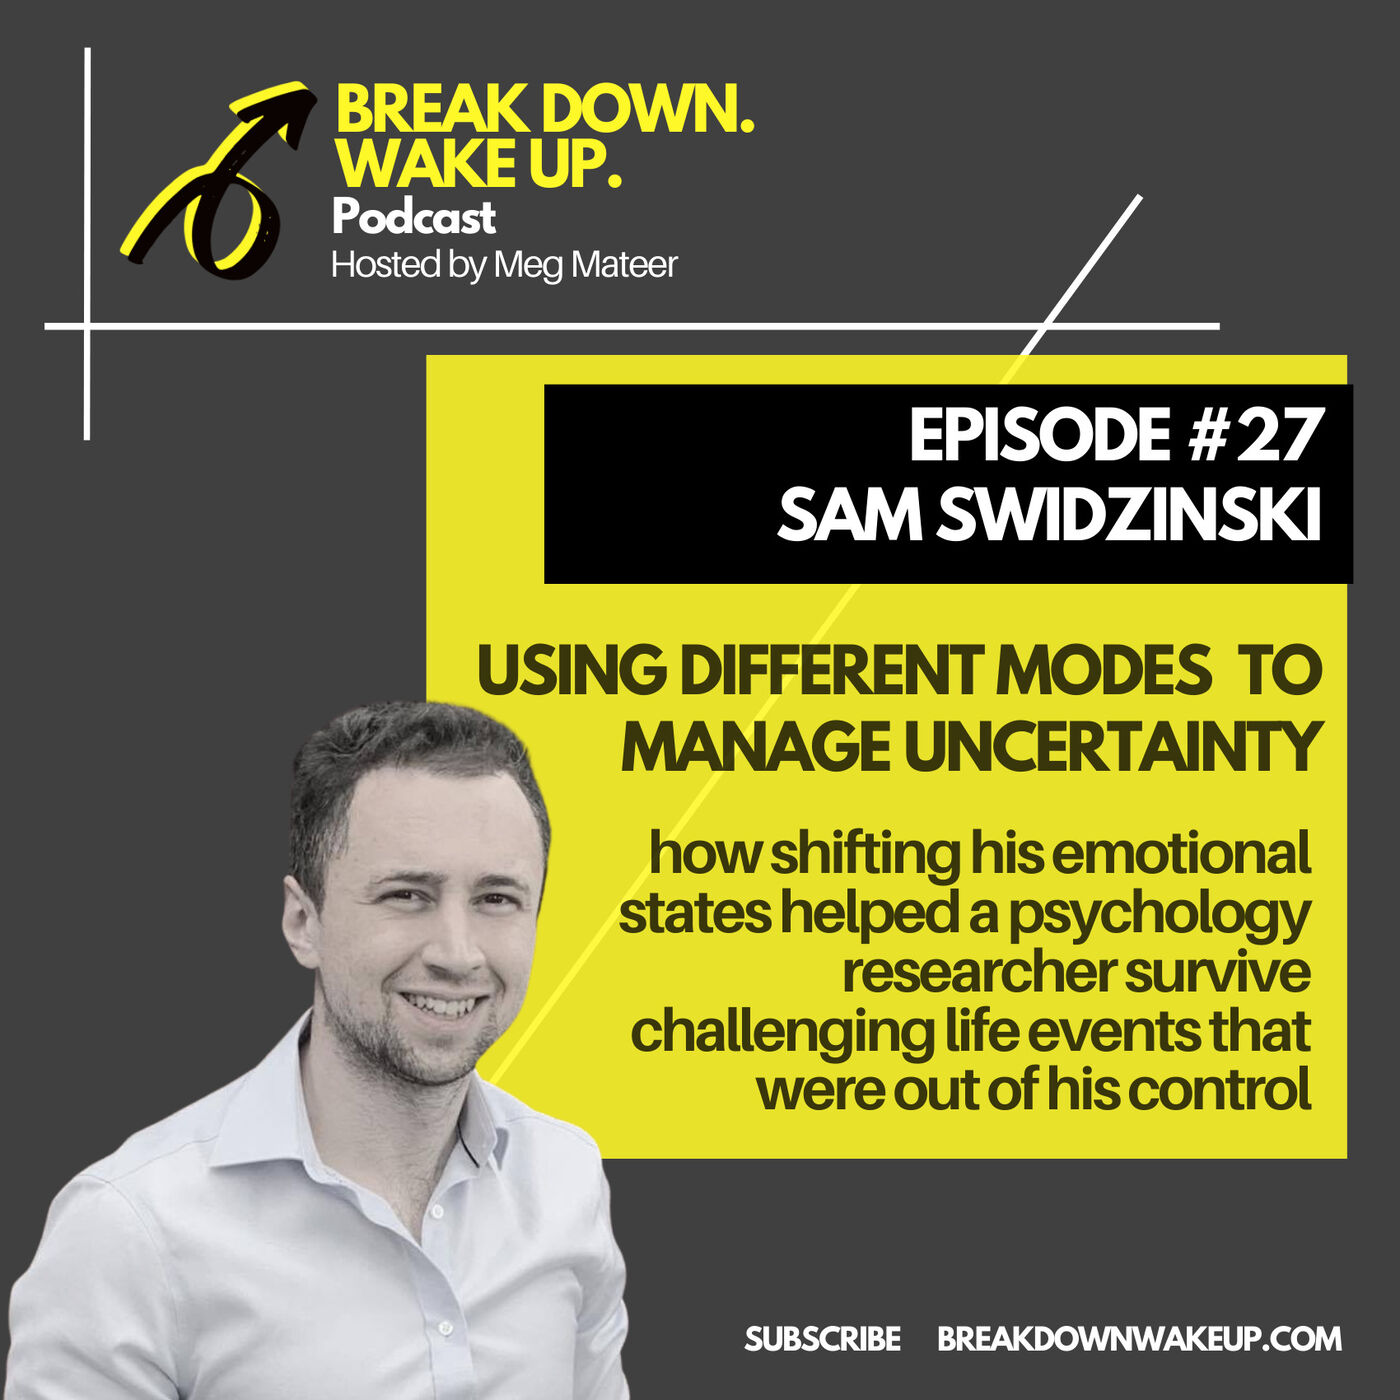 027 - Using different modes to manage uncertainty with Sam Swidzinski